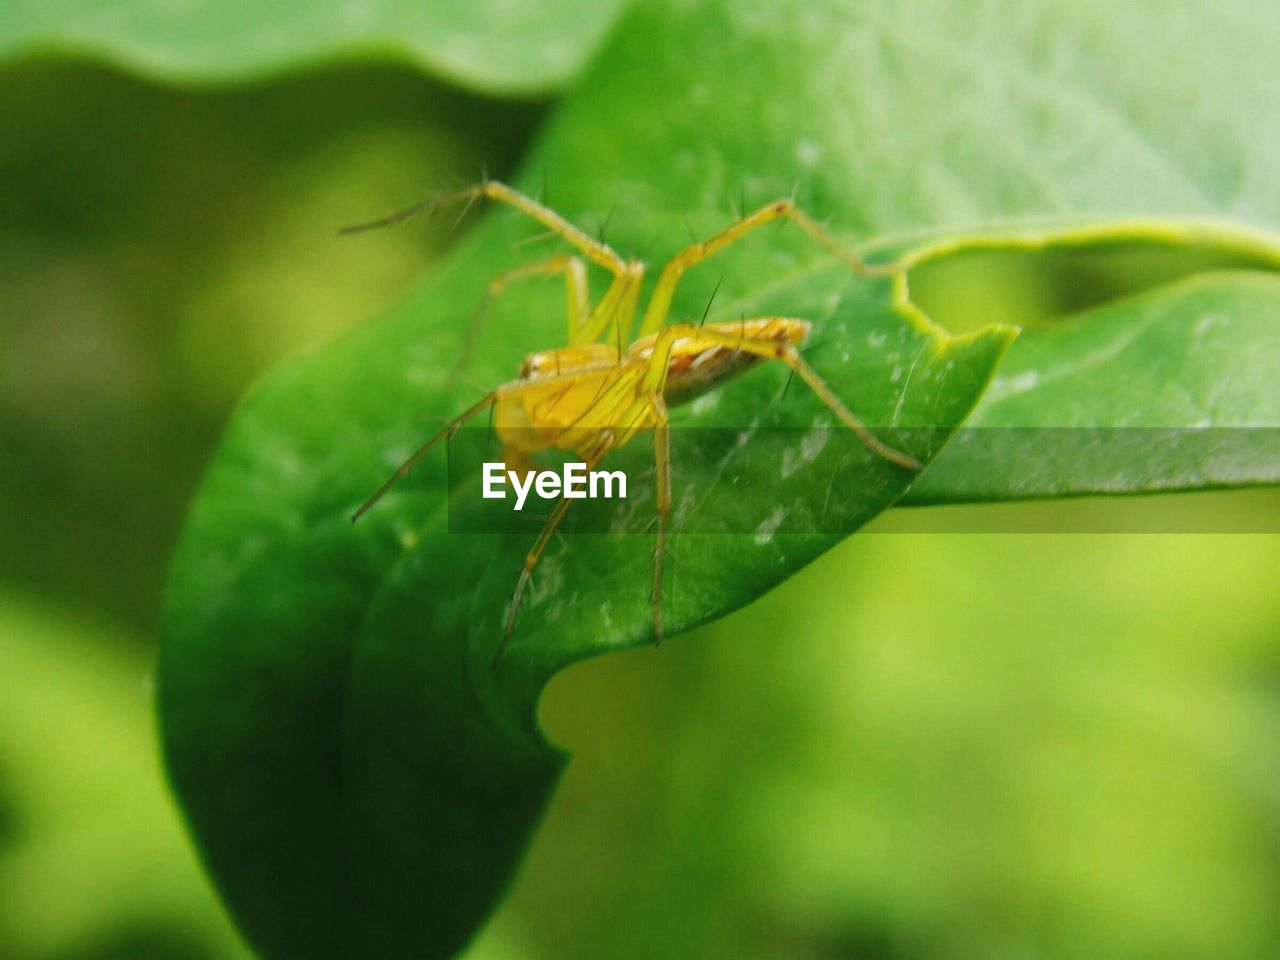 insect, green color, leaf, one animal, animals in the wild, animal themes, nature, close-up, no people, plant, growth, outdoors, animal wildlife, focus on foreground, day, beauty in nature